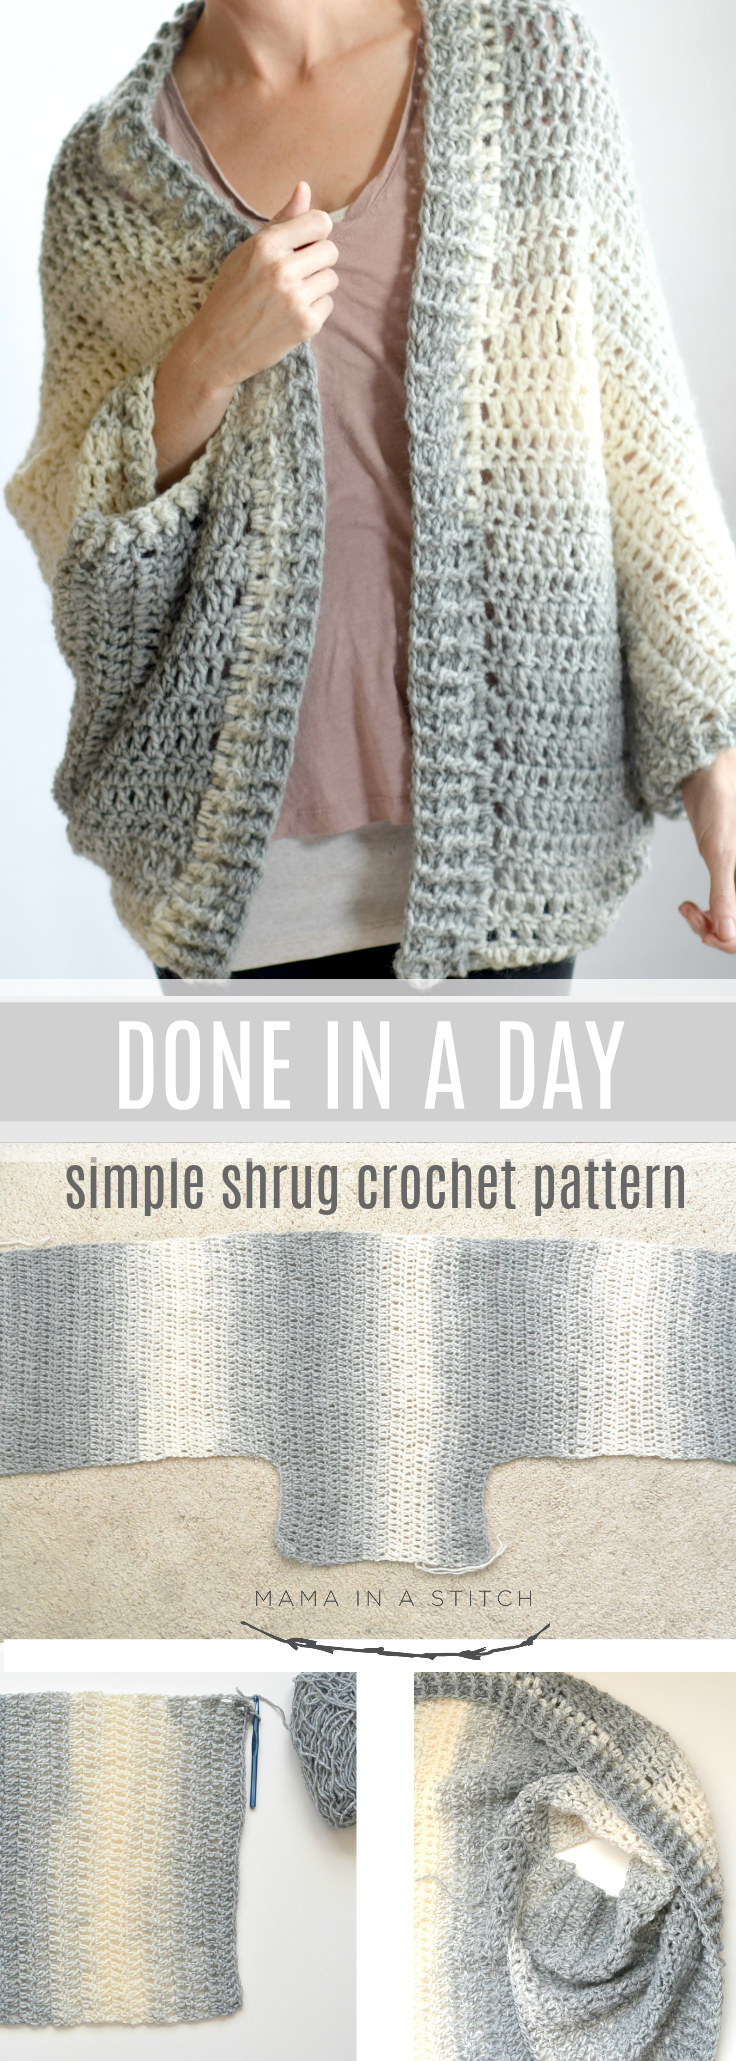 Done In A Day Quick Shrug Crochet Pattern Mama In A Stitch